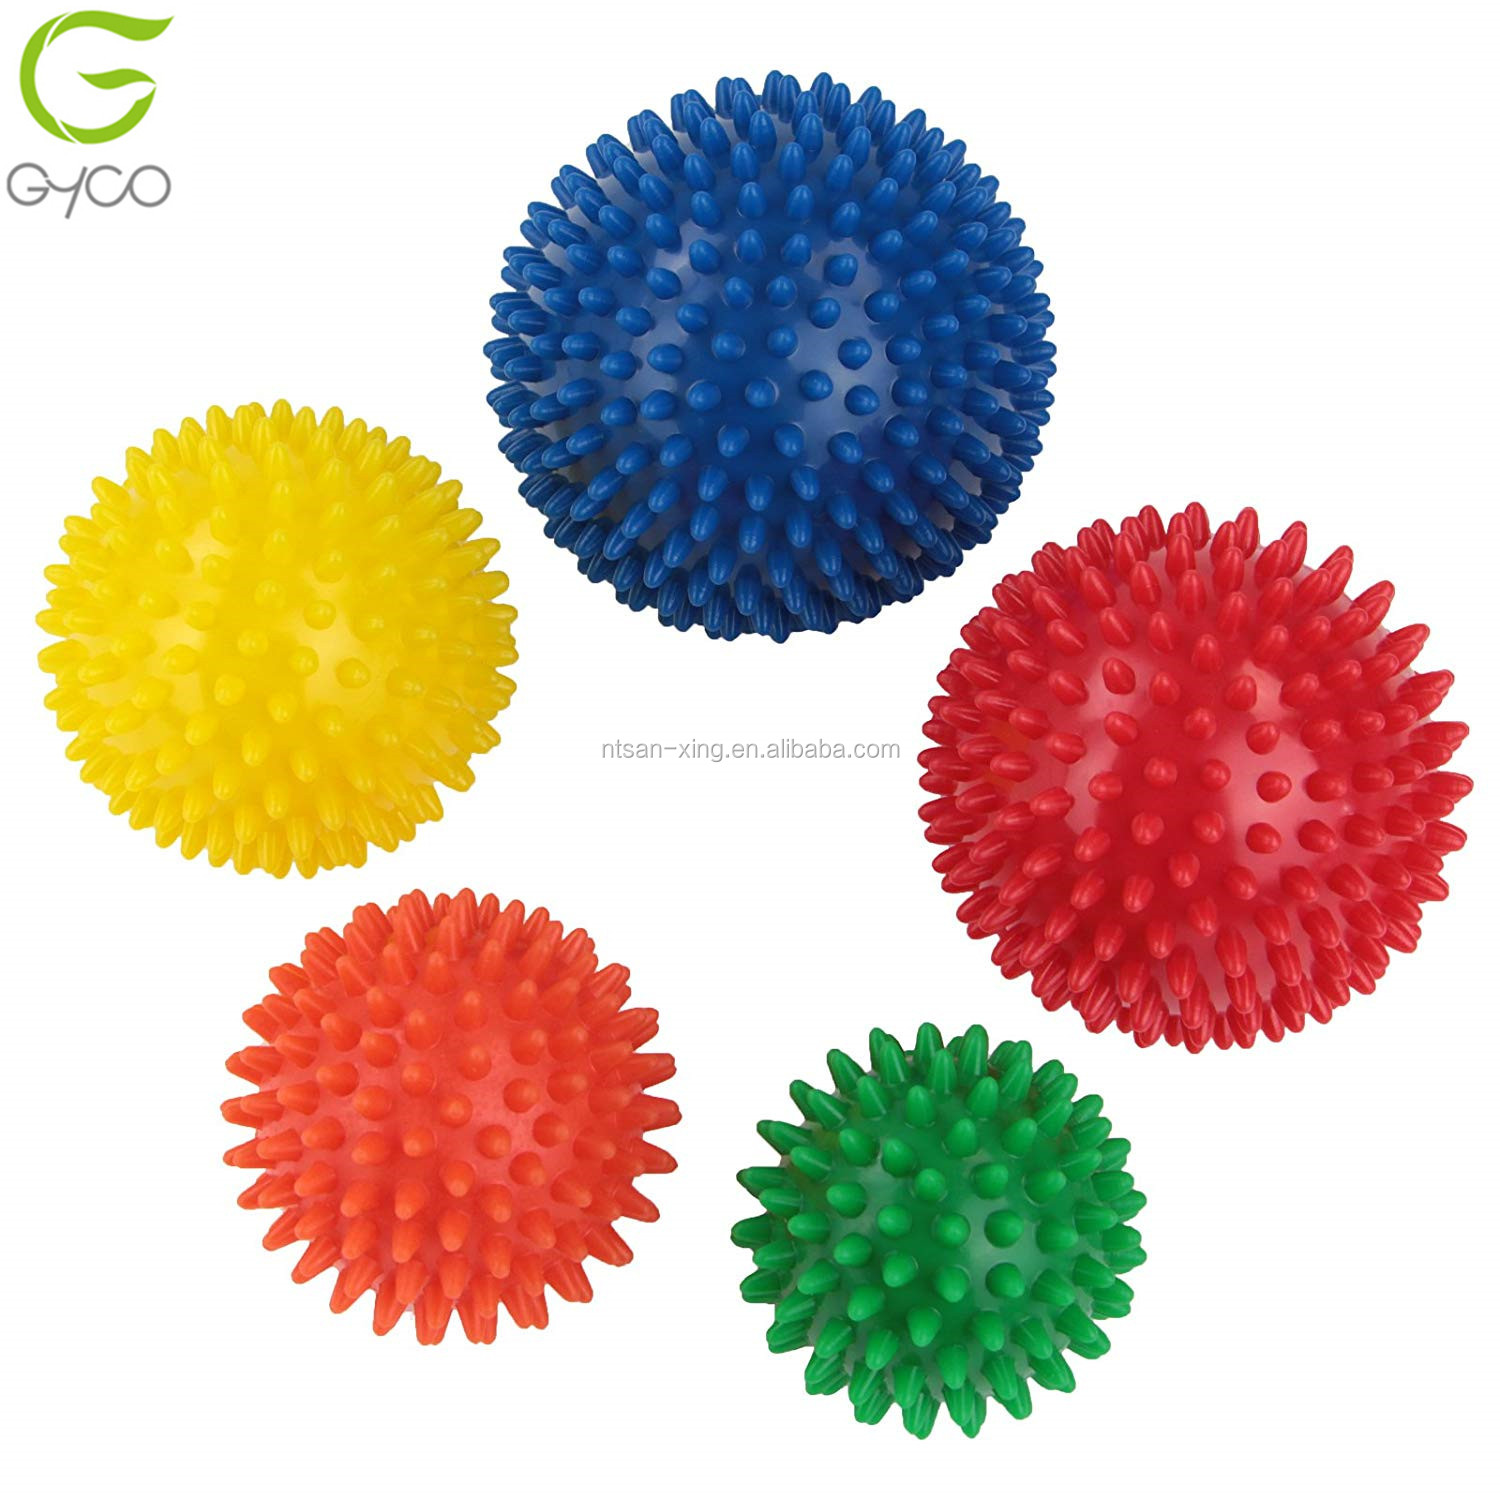 9cm Spikey Massage Ball PVC Grip Ball